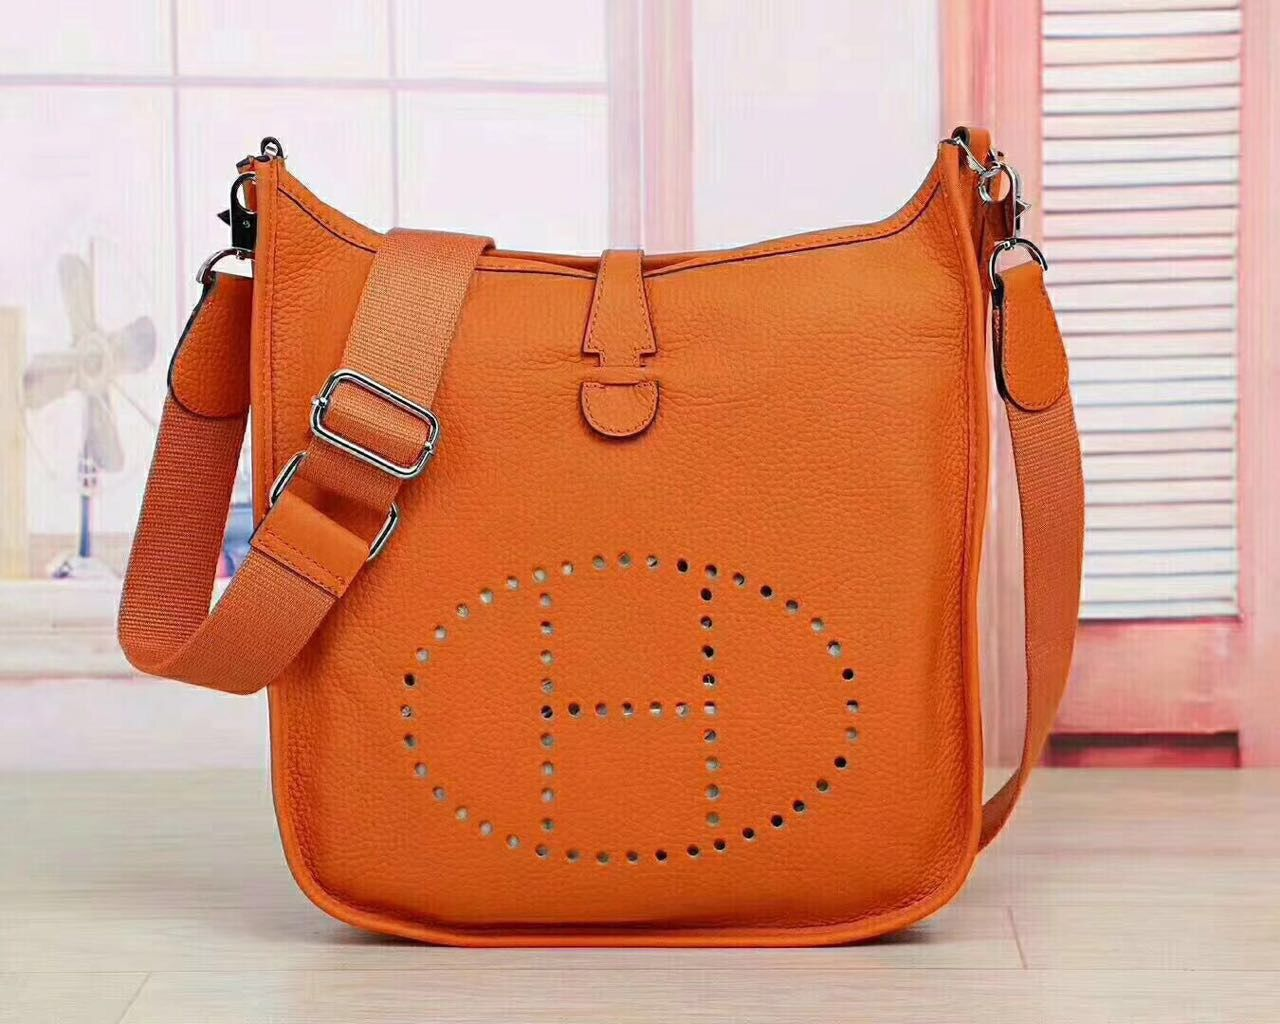 Pin By Dru Pucel On Hermes Fashion Bags